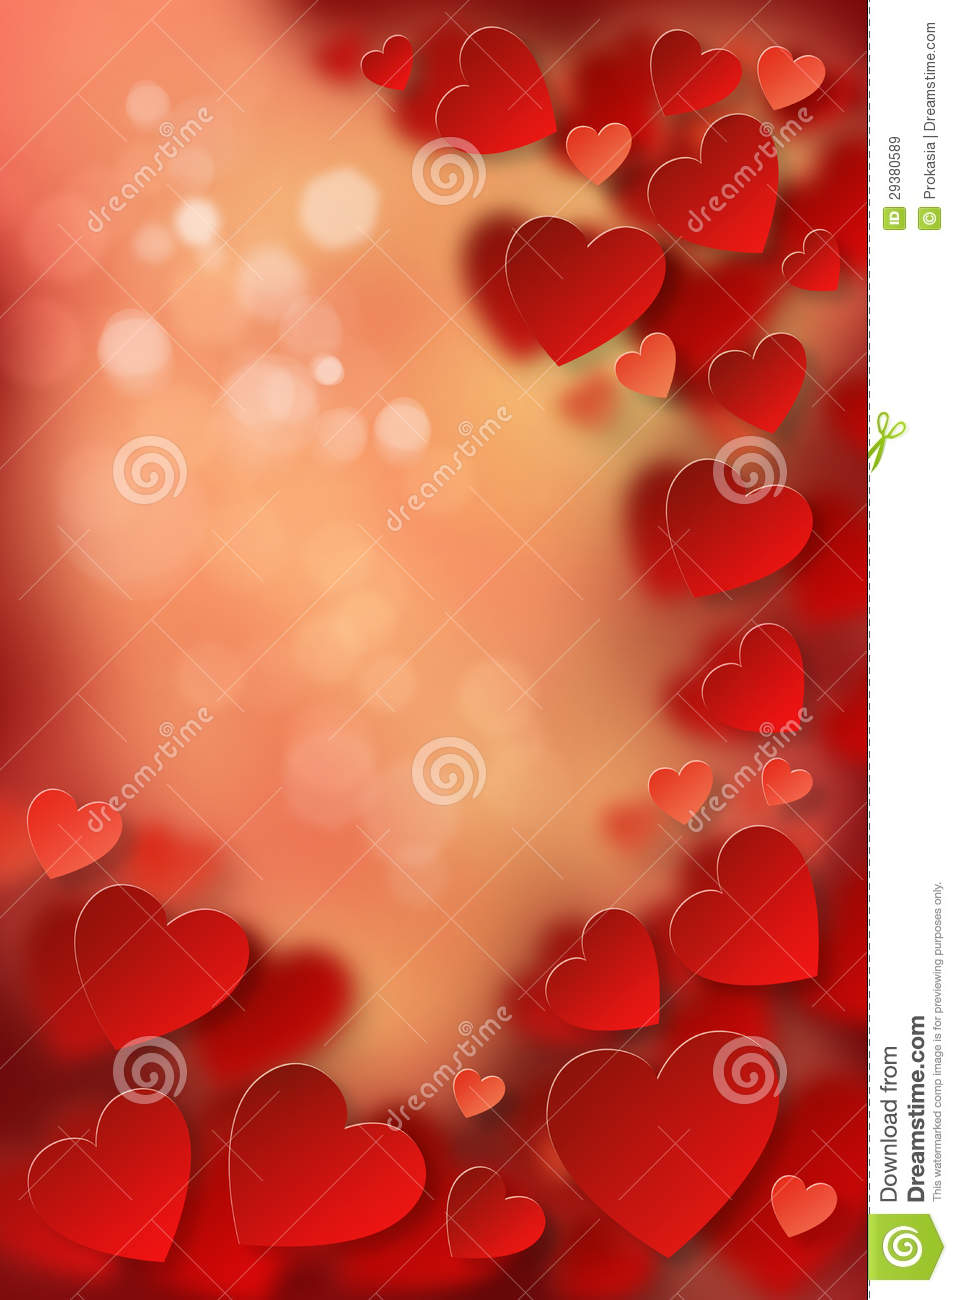 Love Theme Postcard Frame Royalty Free Stock Images